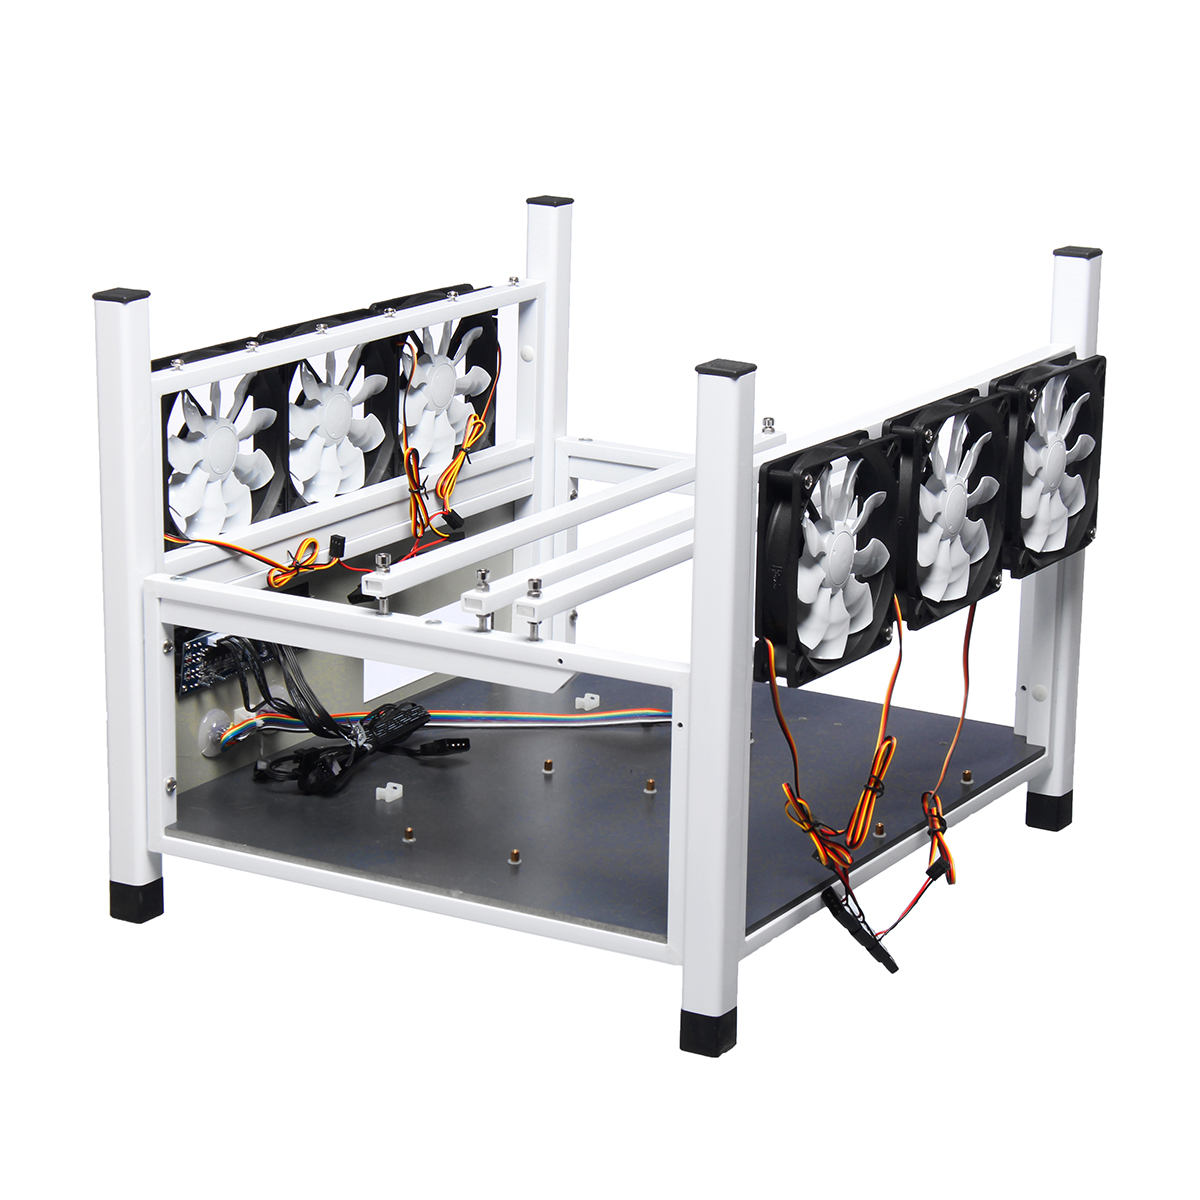 BX36 6GPU Miner Frame 6 Fans Deluxe Ediction Standard Fan Open Air Coin Miner Minning Ca ...